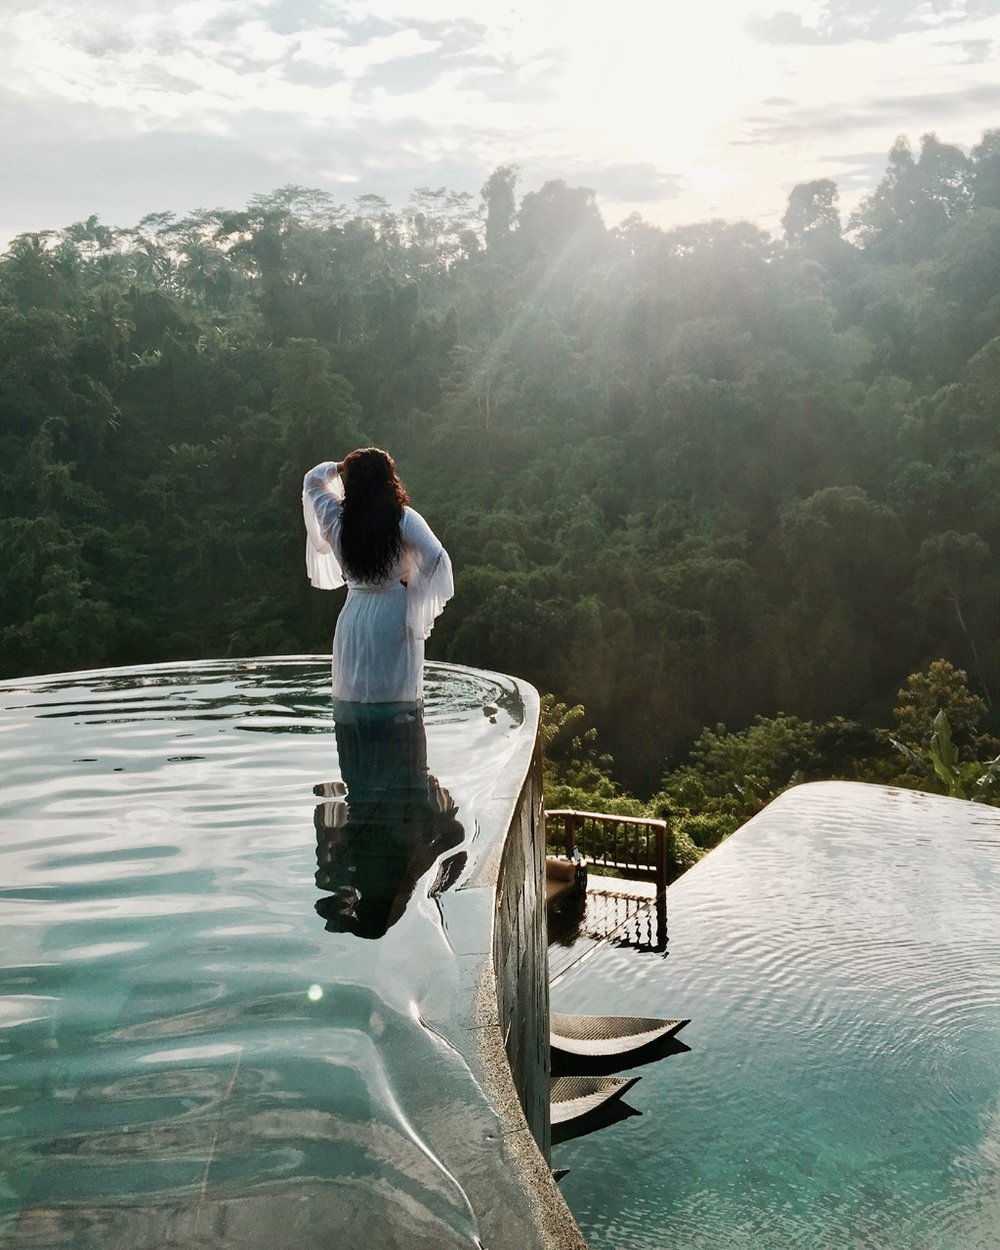 HANGING GARDENS HOTEL  - A 7 Star hotel known for its luxurious destination in the heart of Bali, a spectacular resort with the World's Best Swimming Pool.